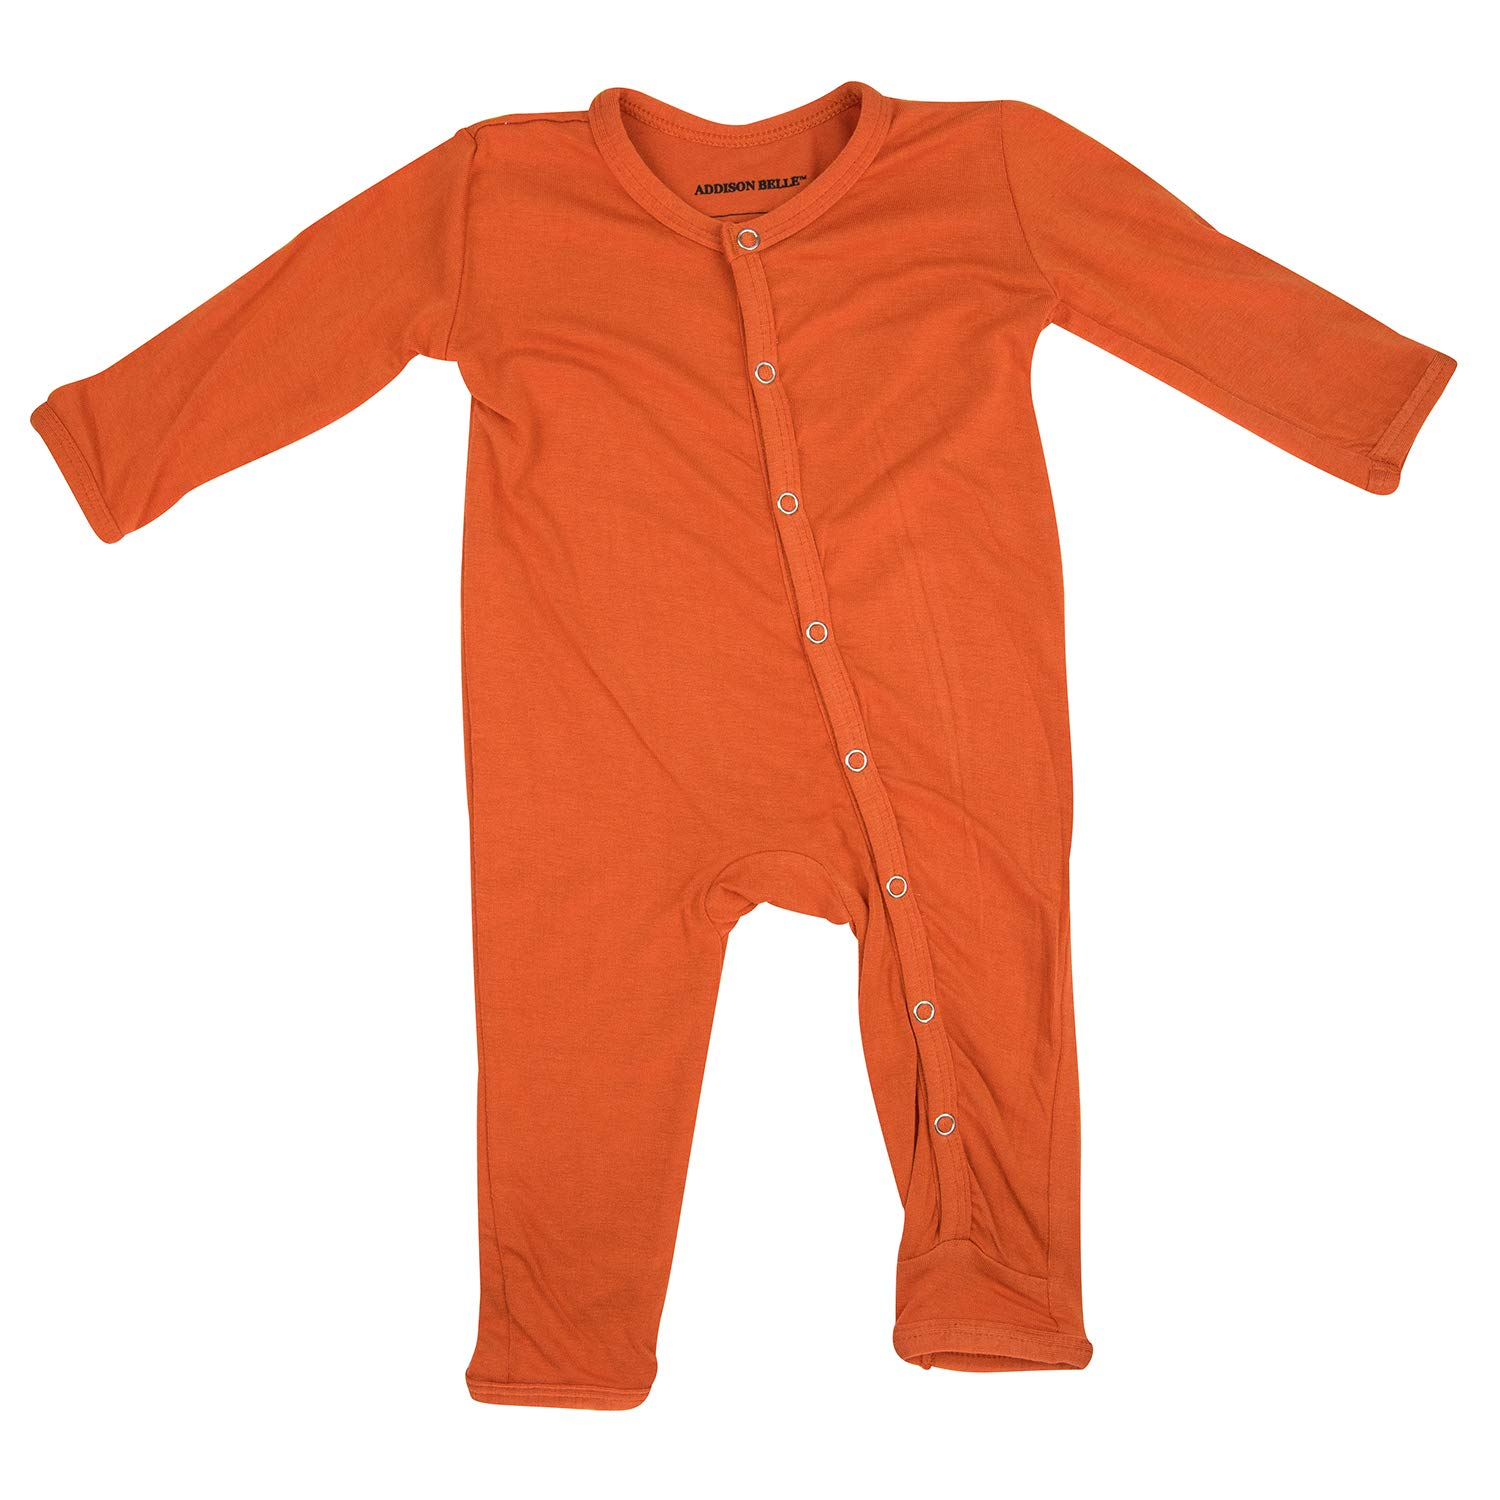 0-3 Month Size Burnt Orange ADDISON BELLE Premium Knit One Piece Baby Romper Ultra Soft /& Breathable